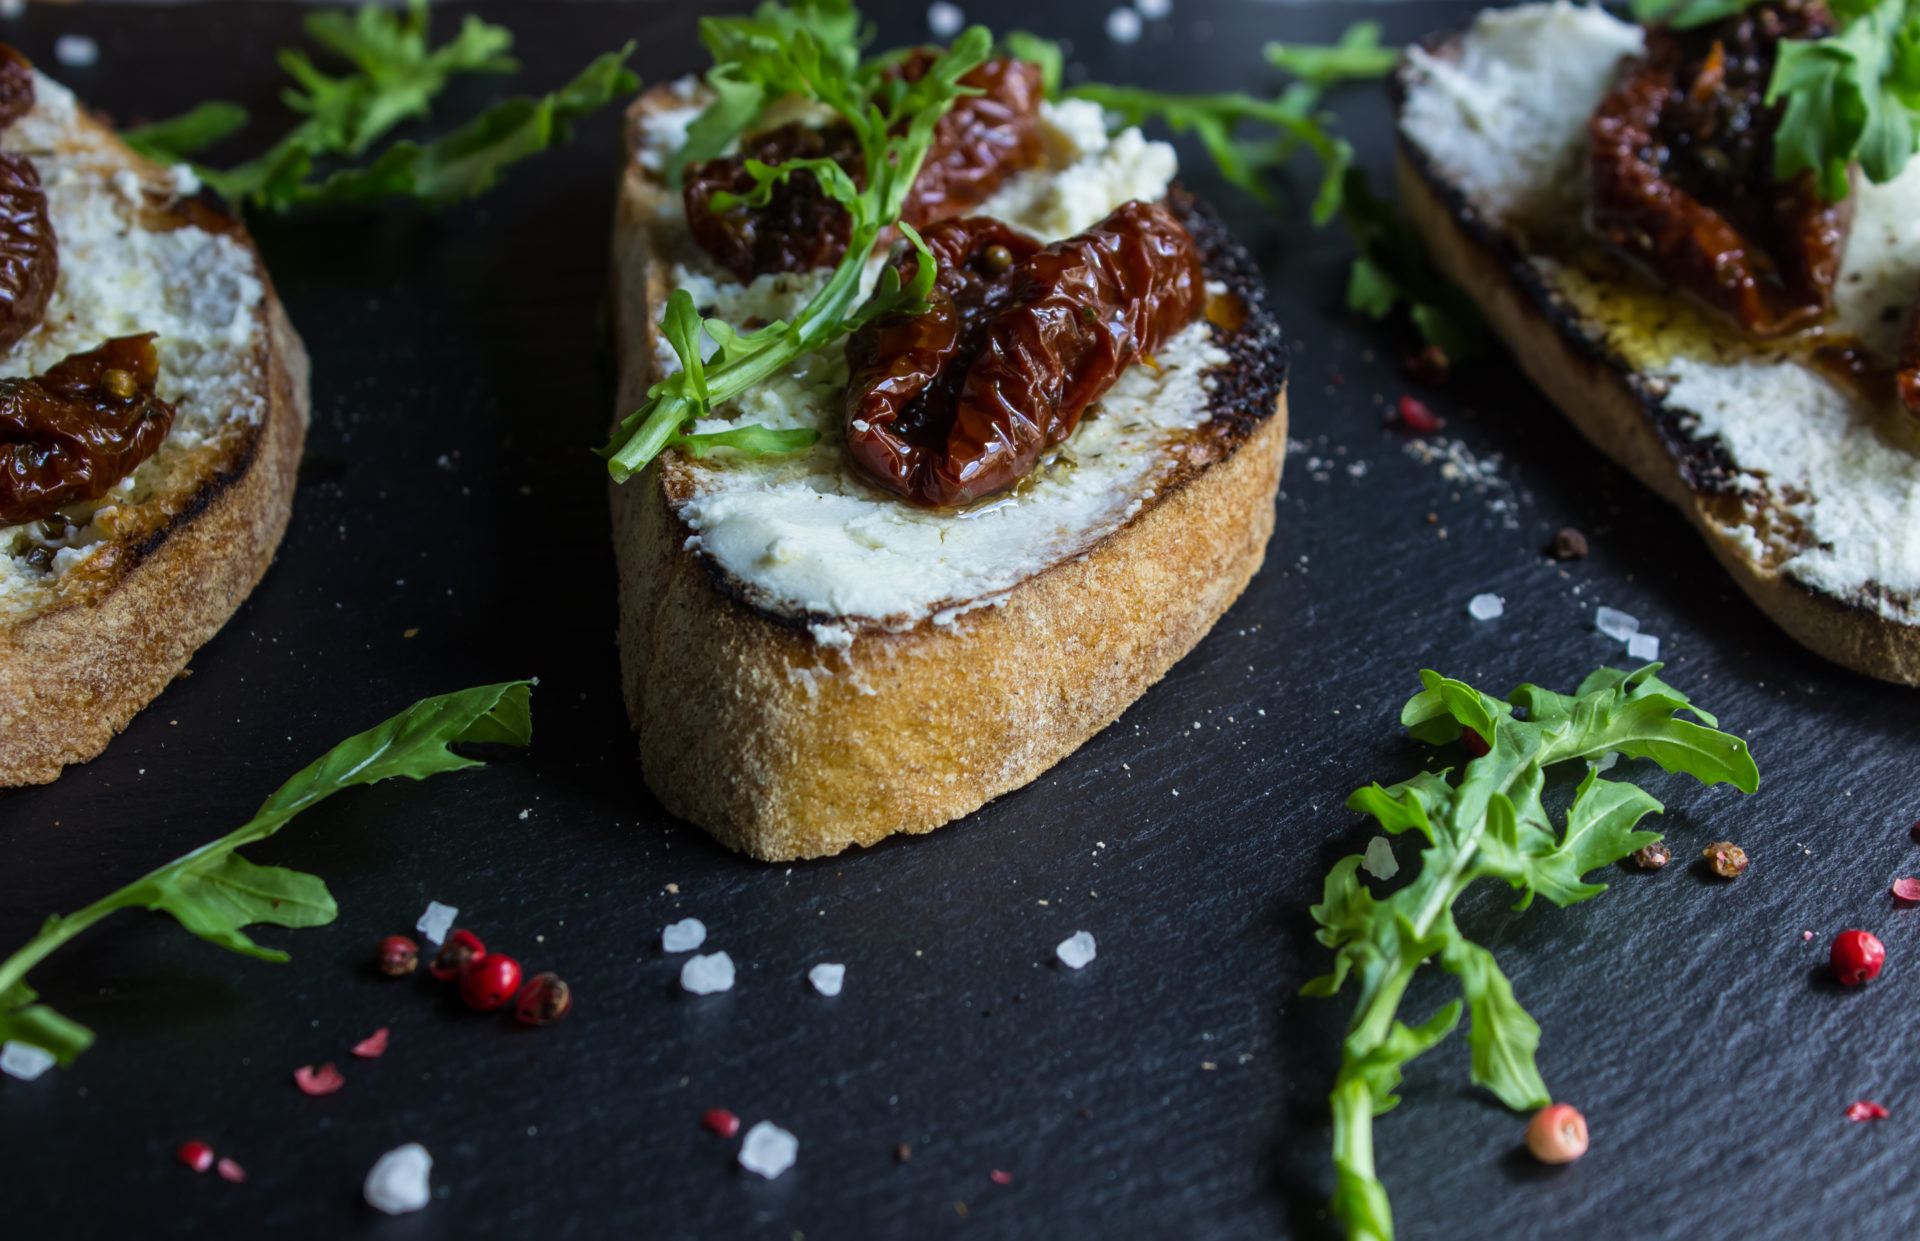 Bruschetta with fresh cheese, sun-dried tomatoes and thyme